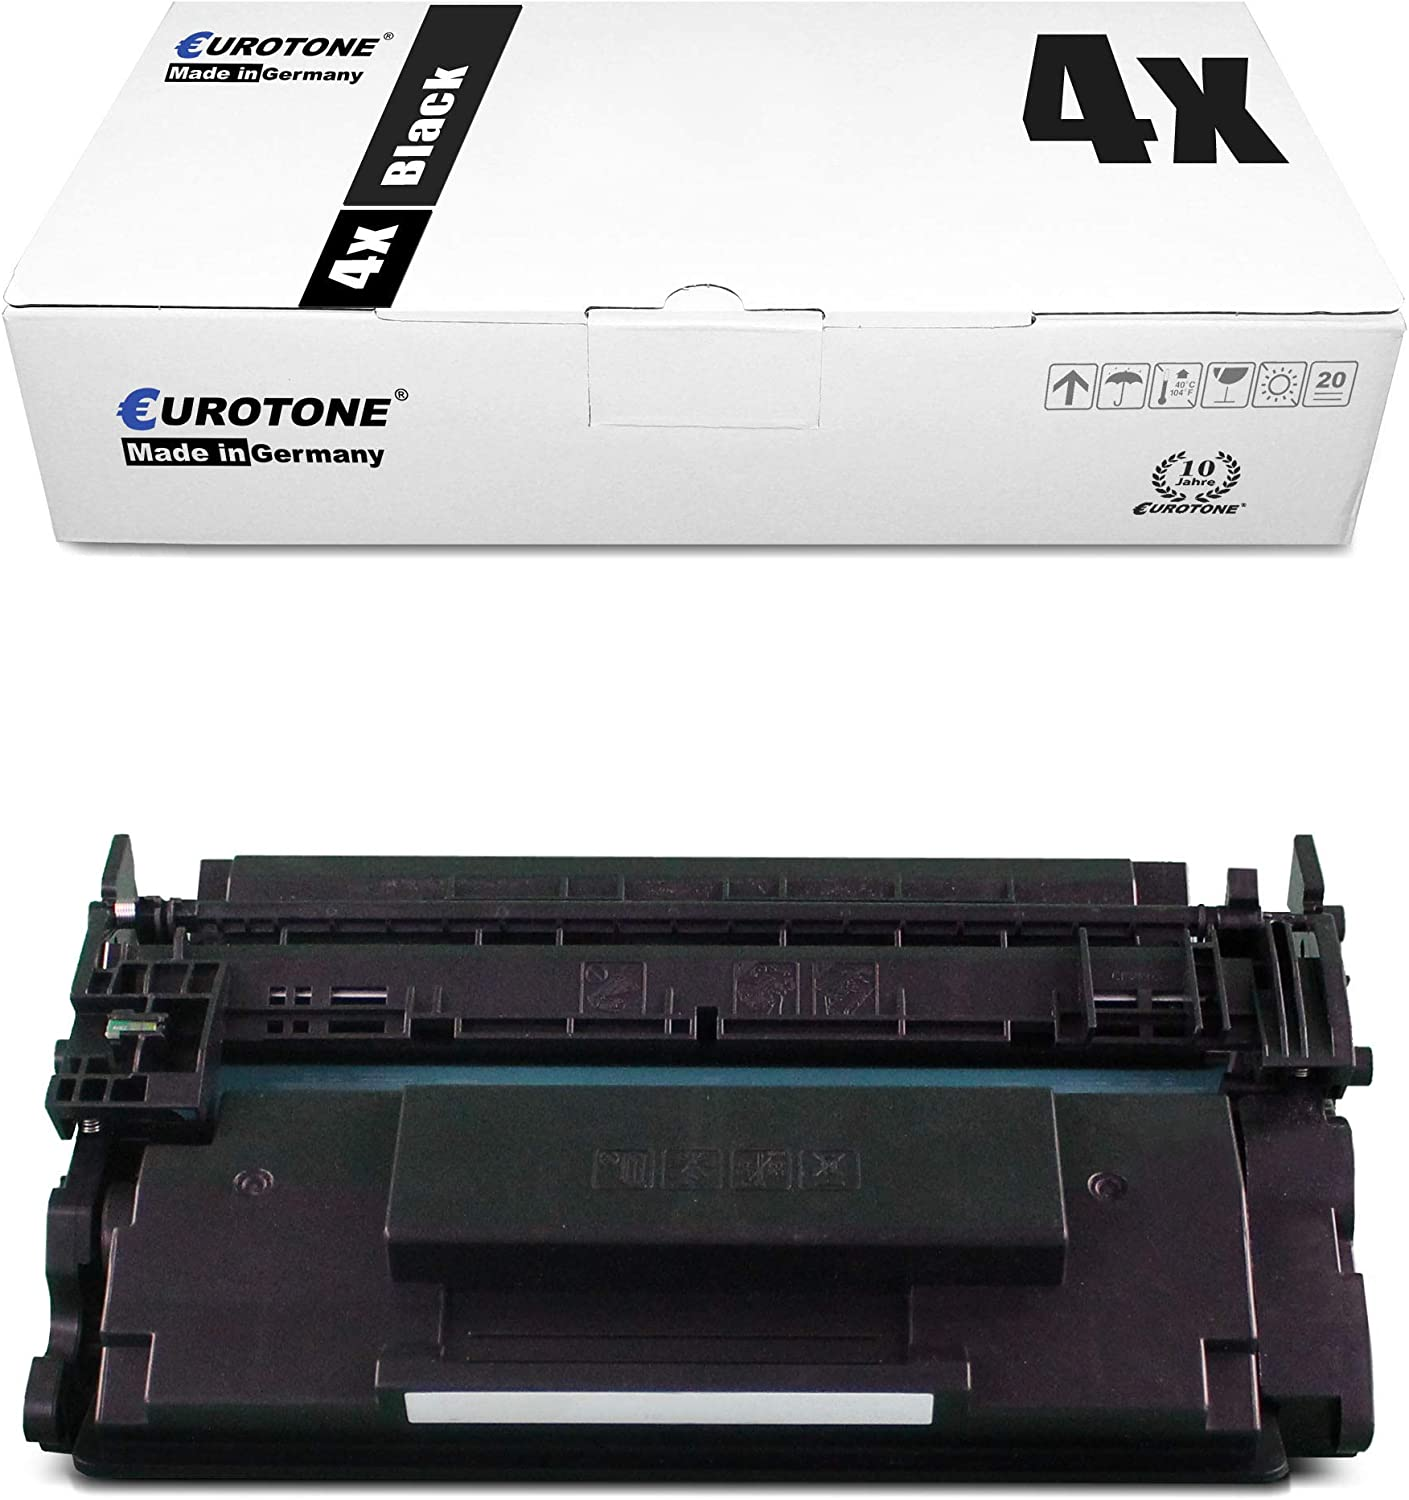 4X Eurotone Remanufactured Toner for HP Laserjet Pro MFP M 227 fdn fdw sdn Replaces CF230X 30X